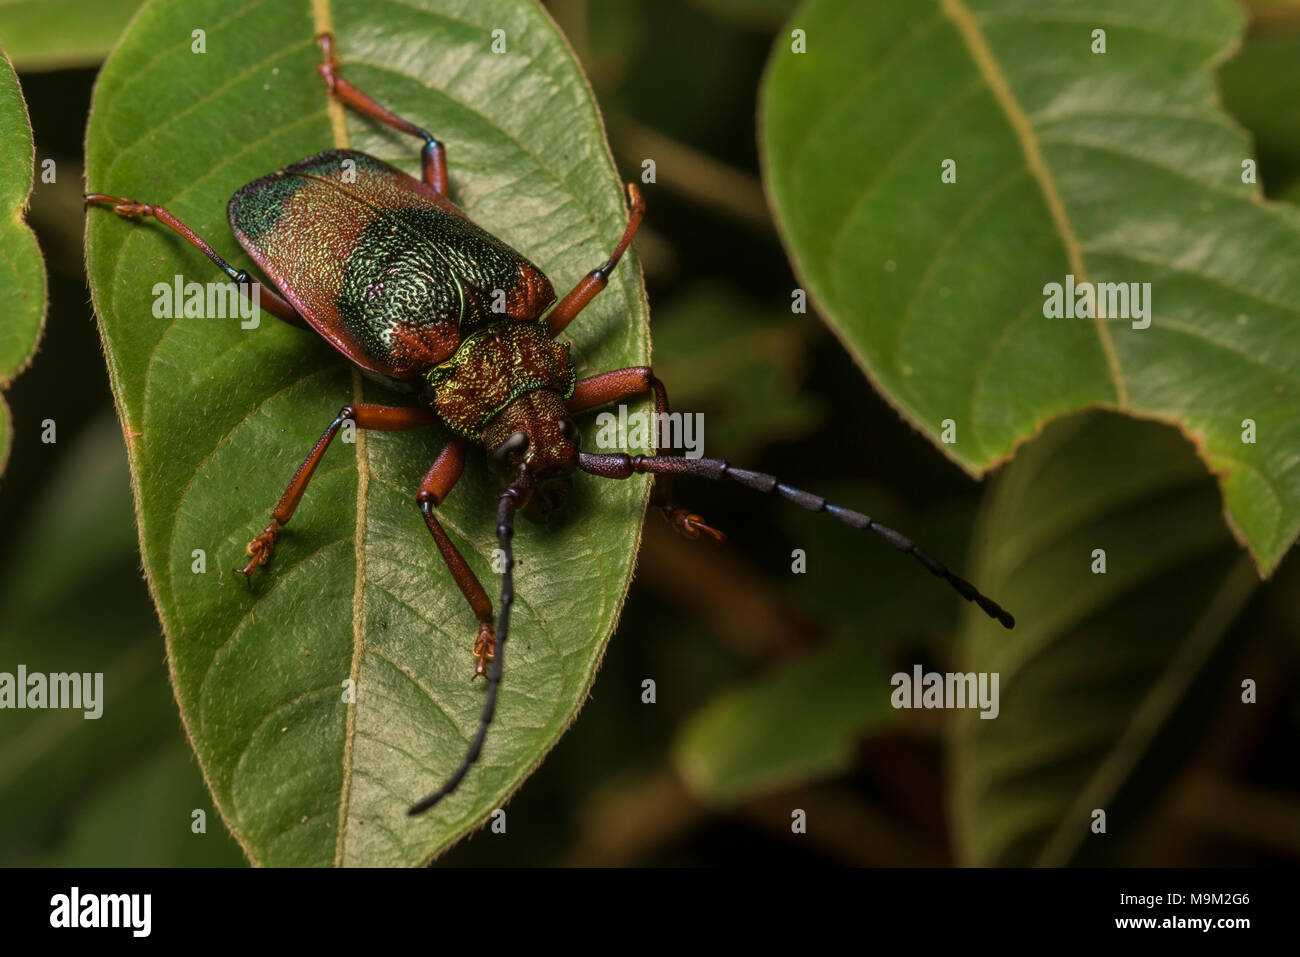 Some sort of beetle from tropical Peru, found sitting on this leaf in the tropical rainforest. - Stock Image